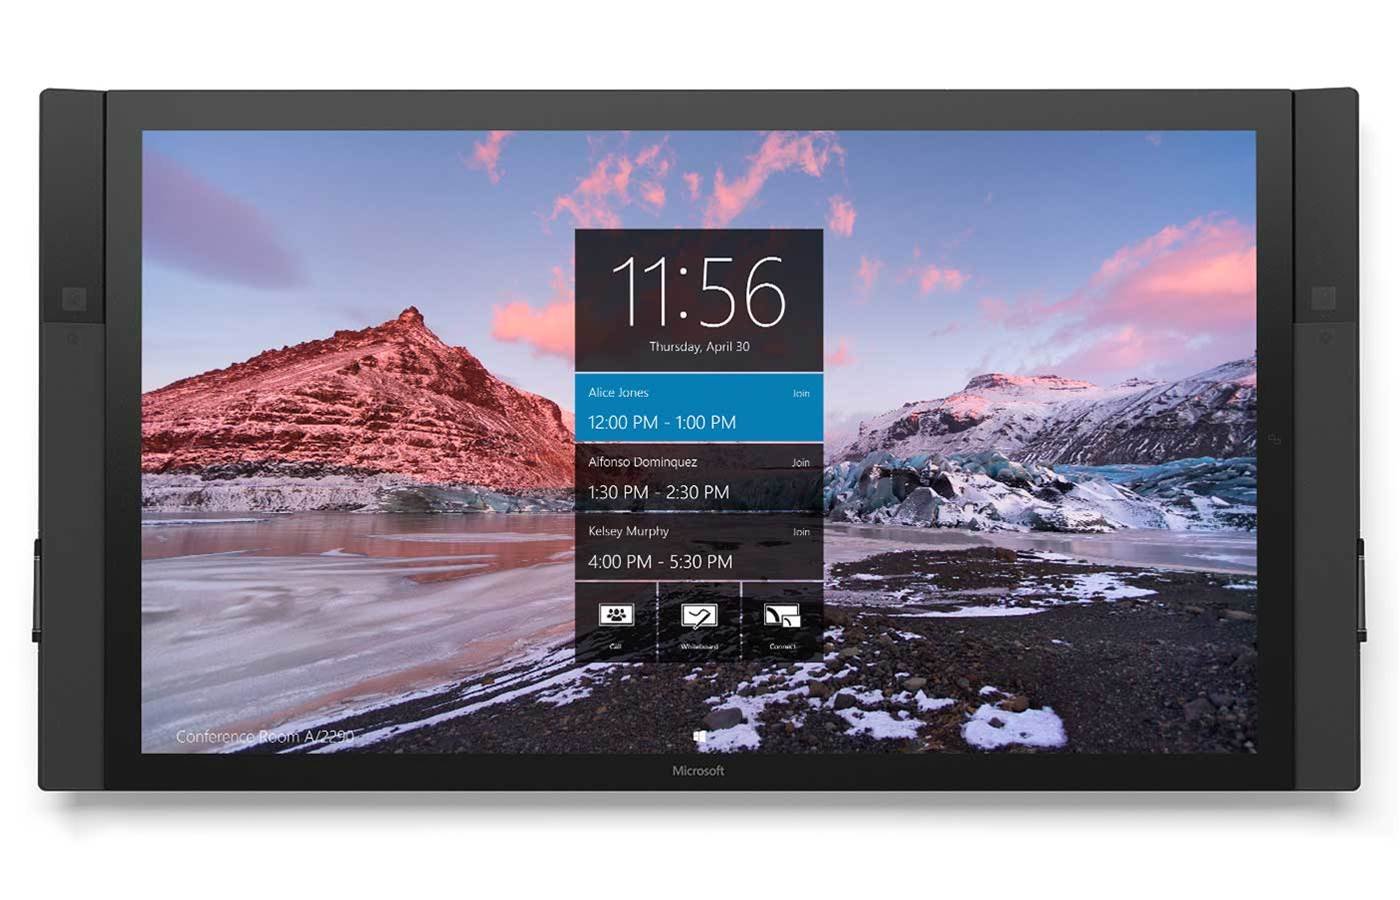 Microsoft reseller, Fast50 company Insync Technology books $2.5 million in Skype, Surface deals